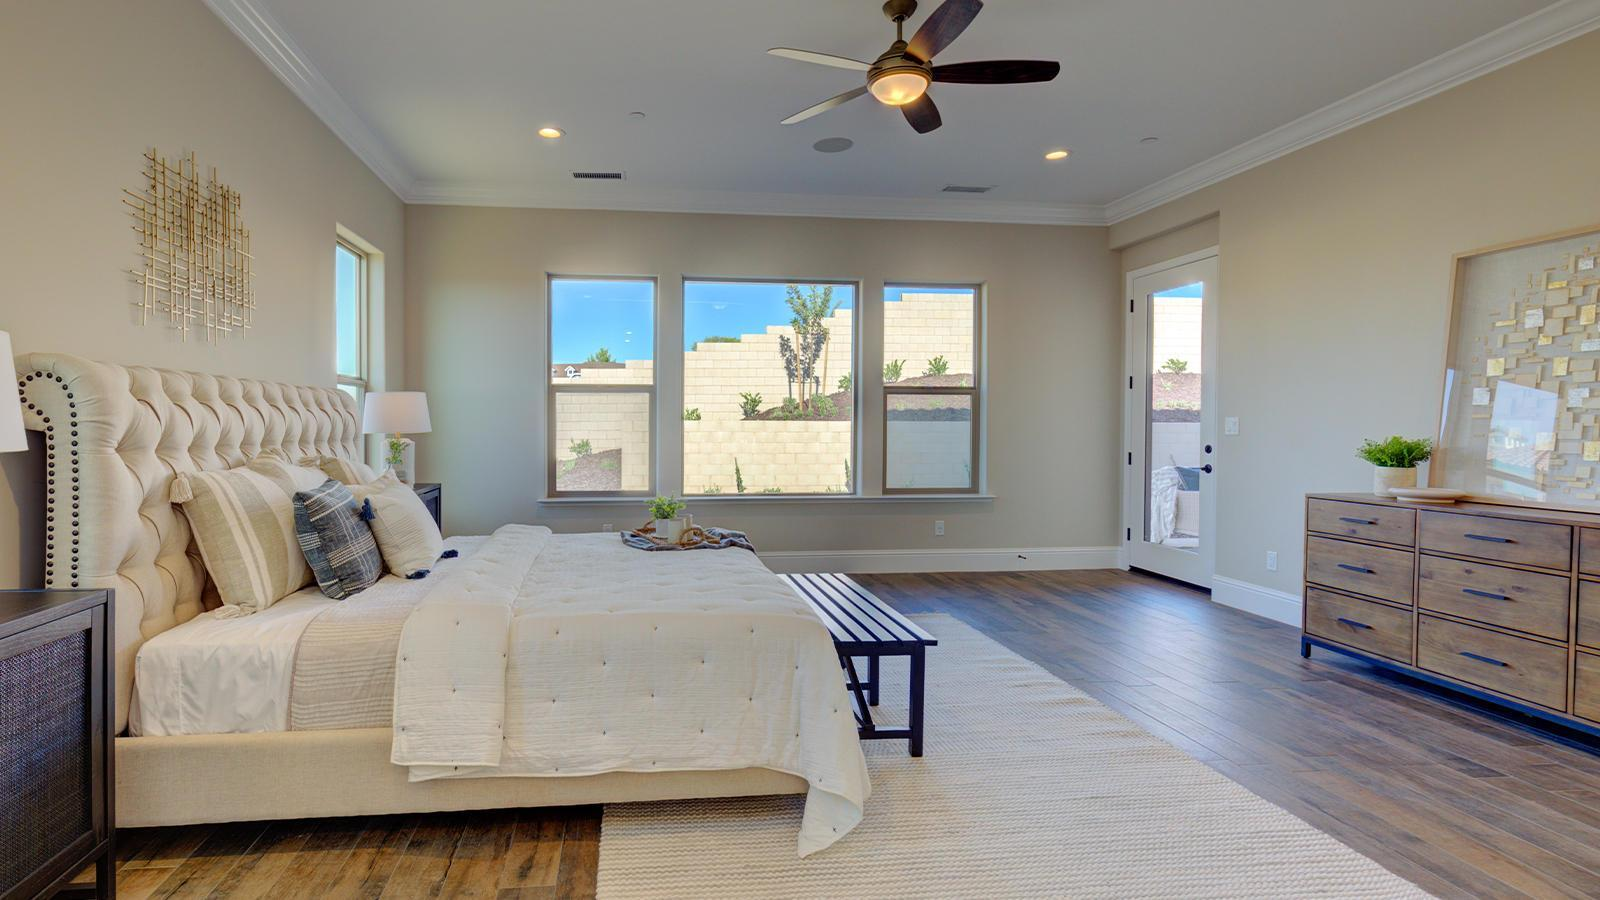 Bedroom featured in the Residence 7 By Granville Homes  in Fresno, CA